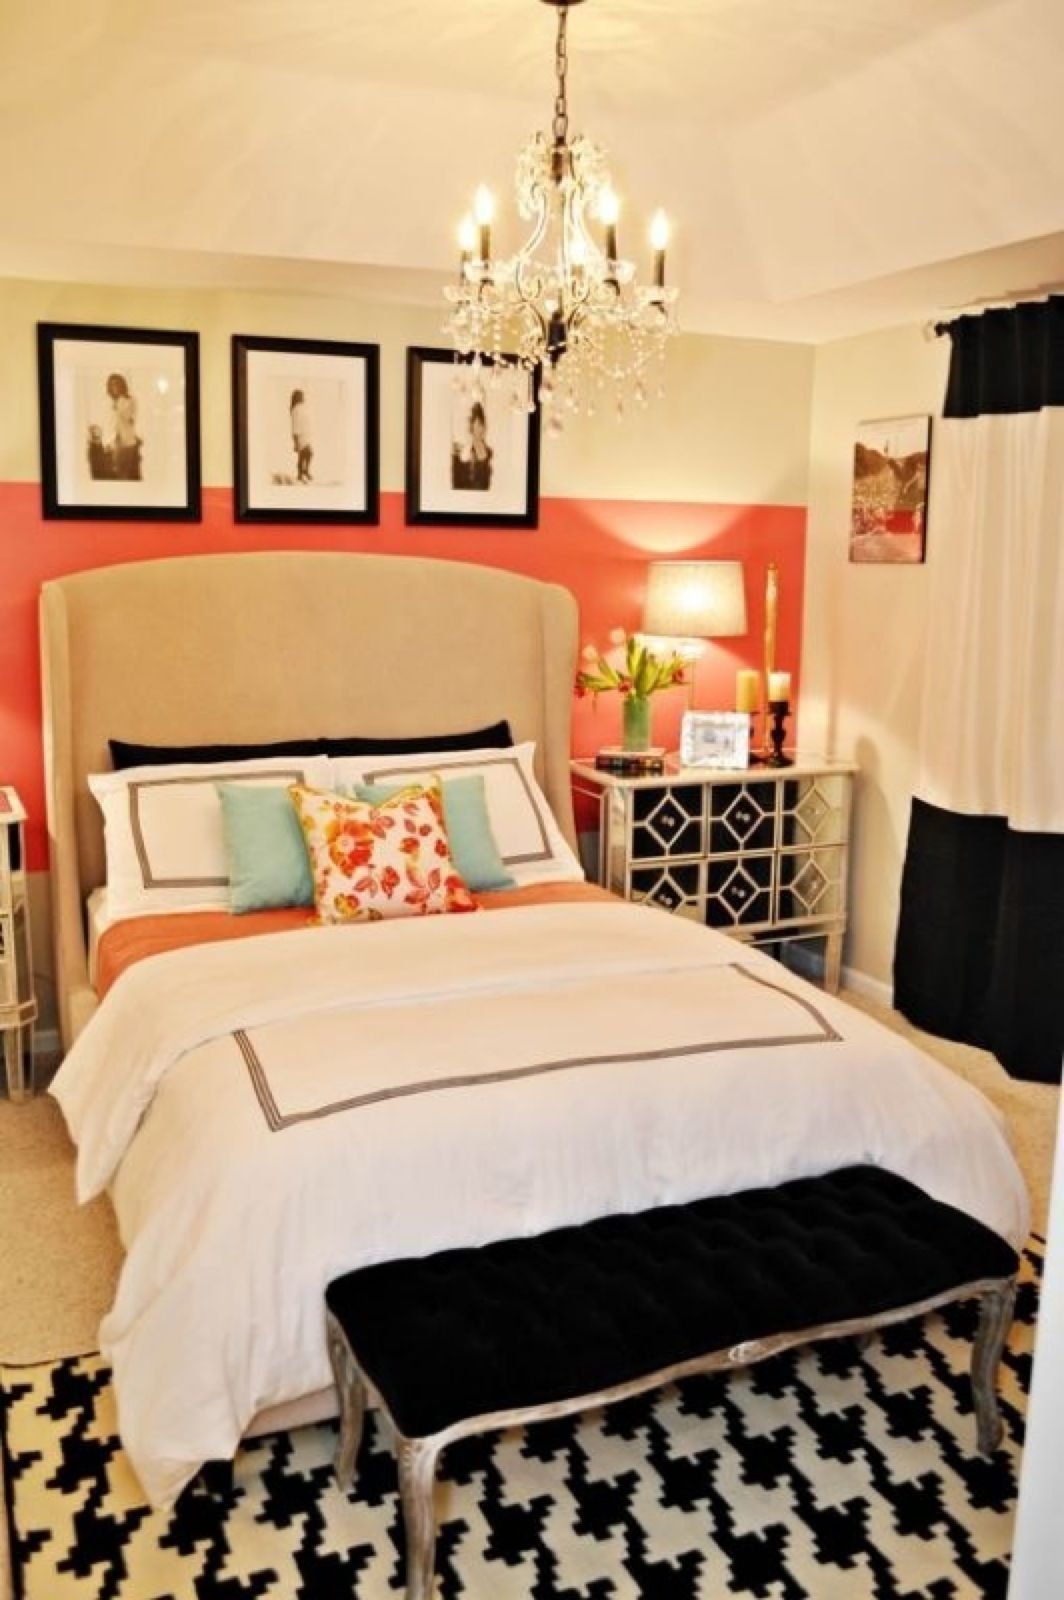 pin by victoria duncan on home decor pinterest bedrooms decor styles